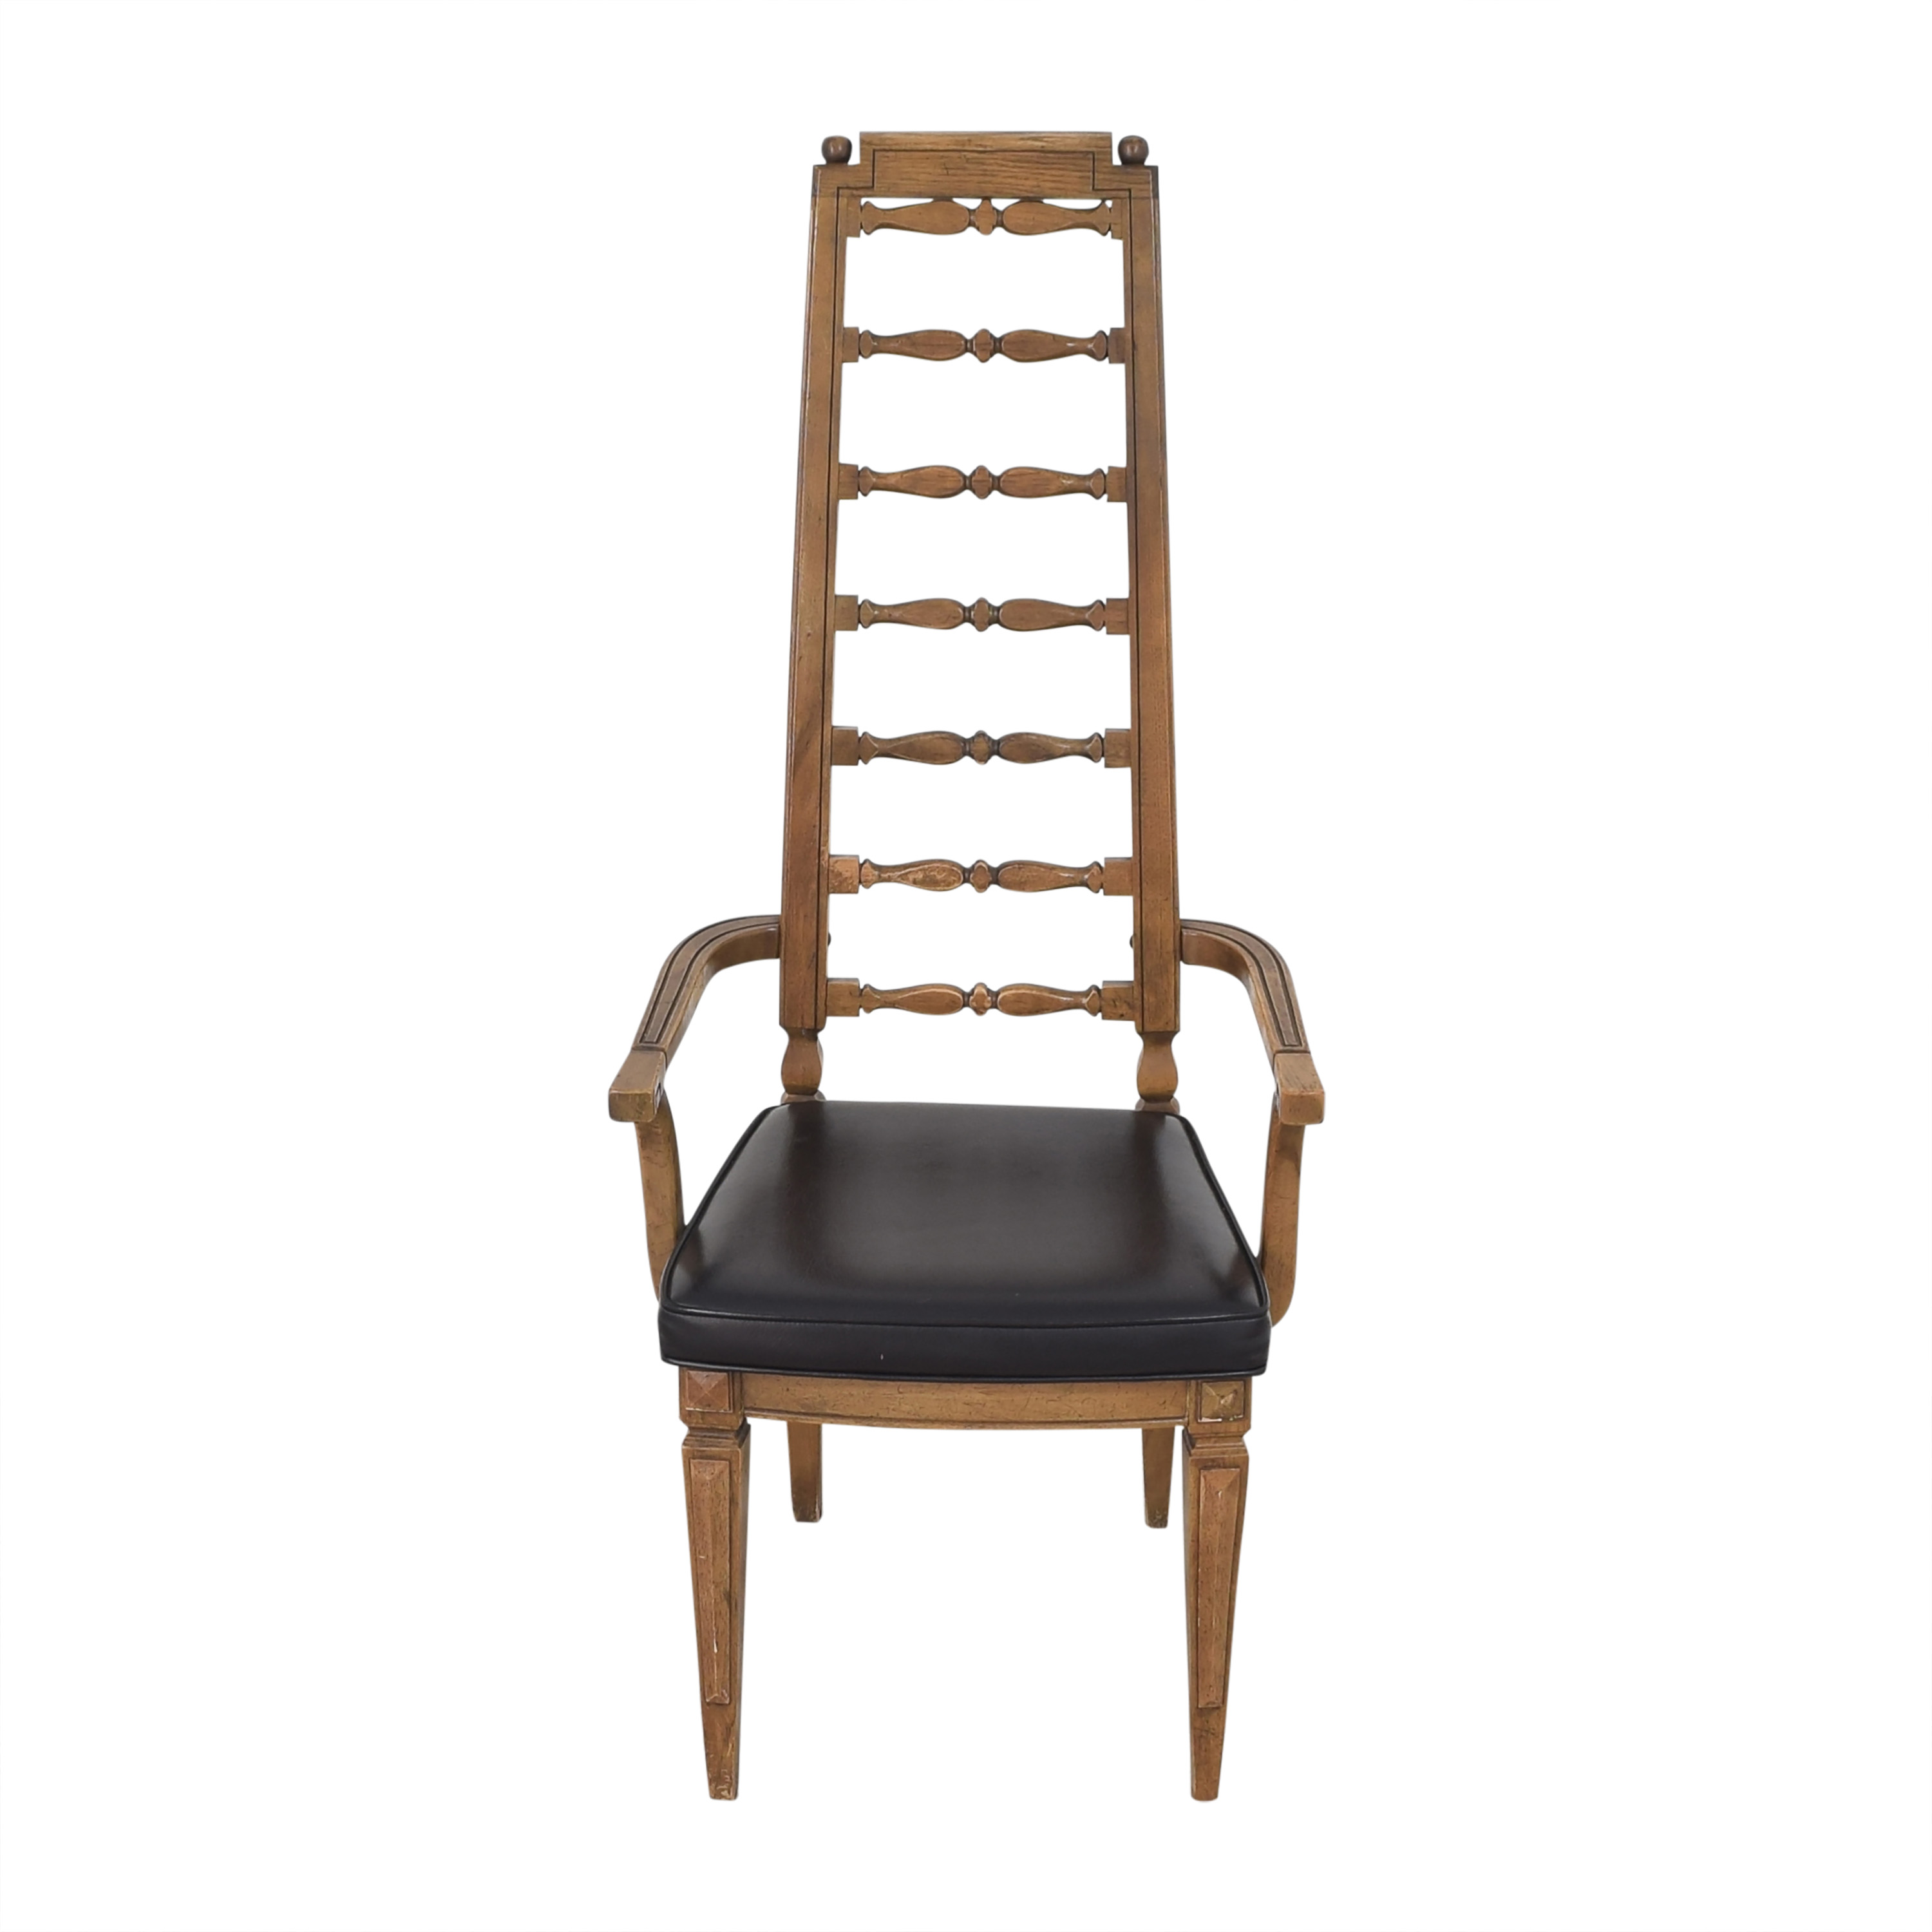 Thomasville Thomasville Tall Ladder Back Dining Arm Chair second hand